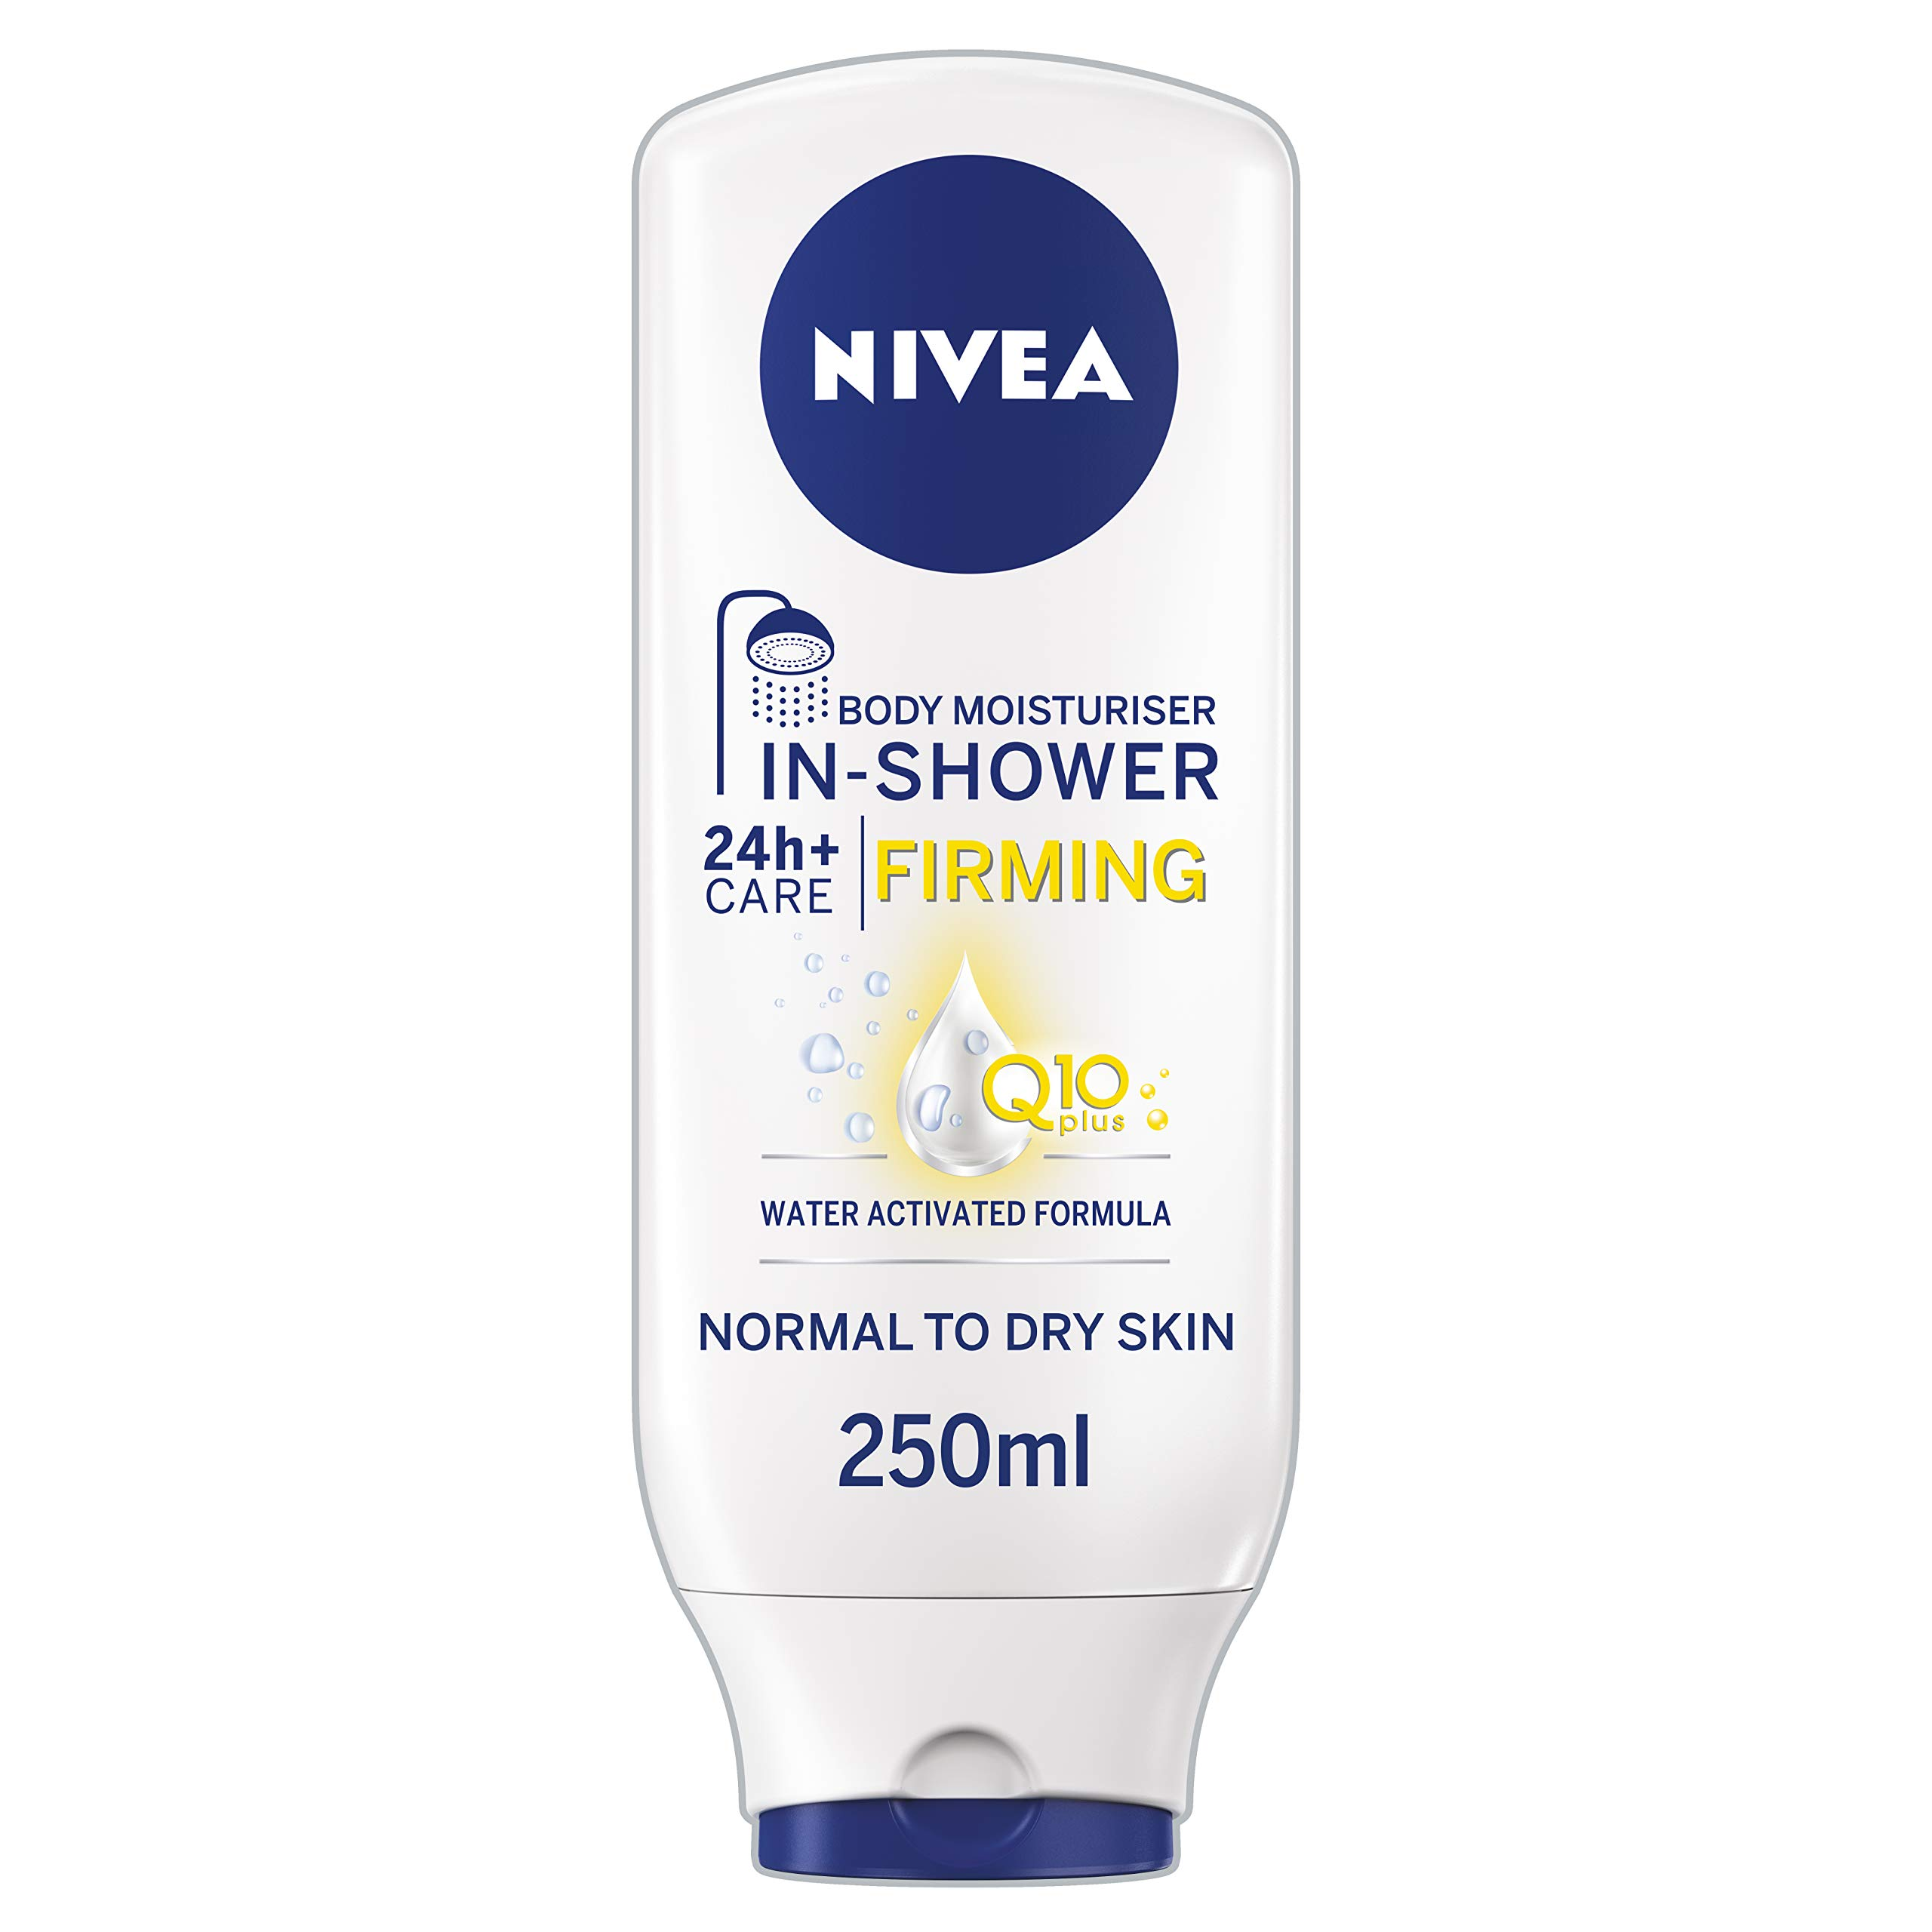 NIVEA In-Shower Body Moisturiser Firming with Q10, 250 ml